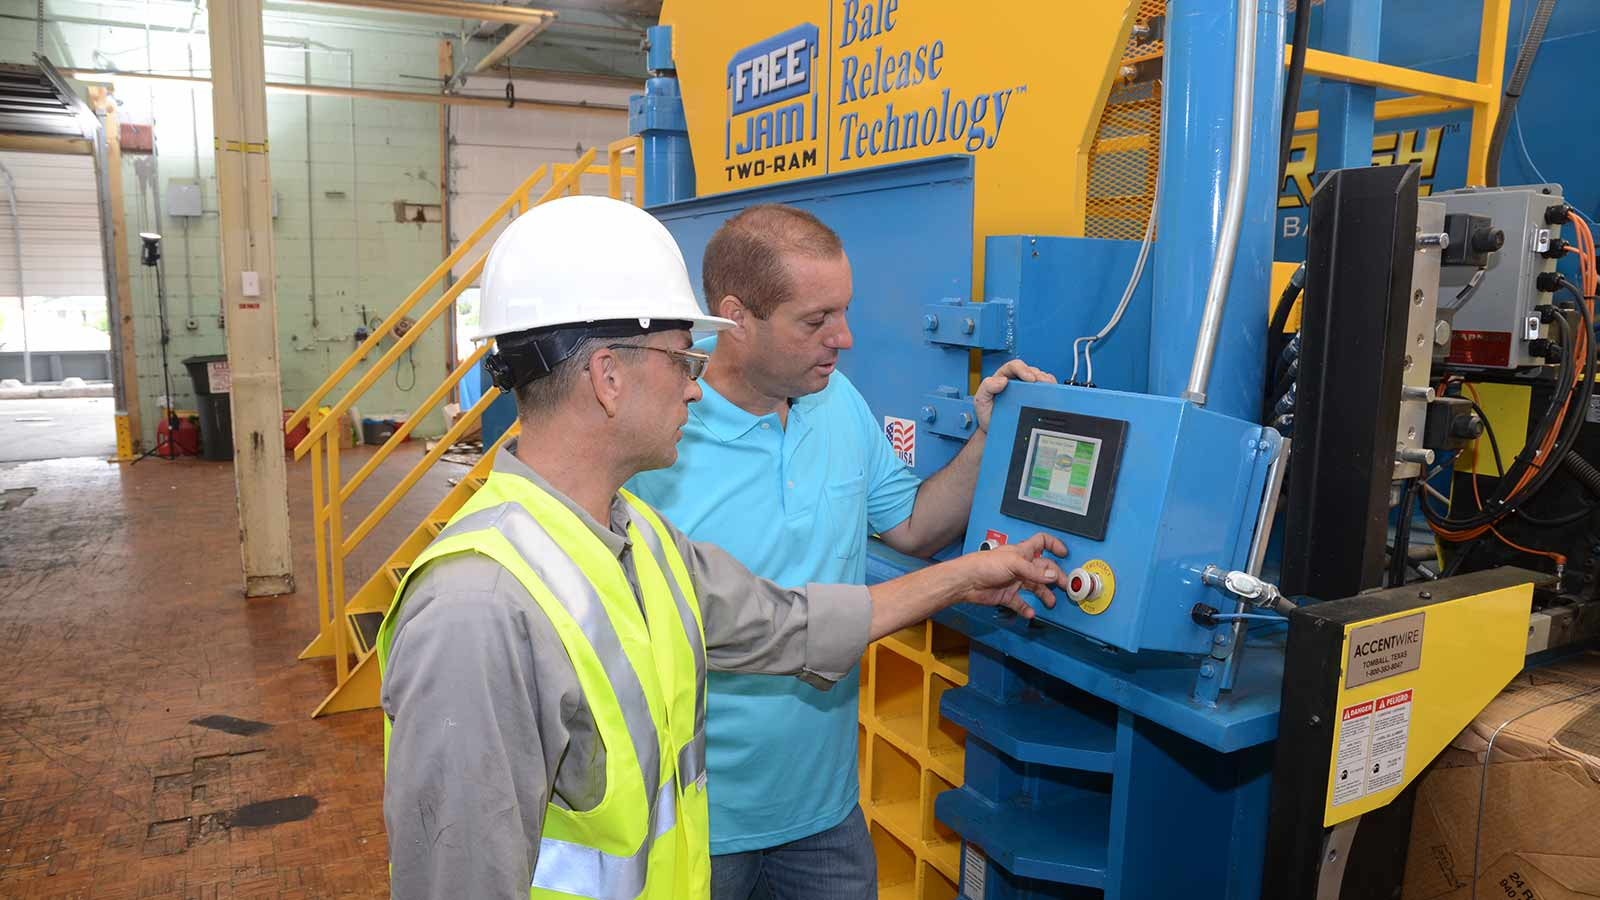 Commonly Used Waste Recycling Equipment